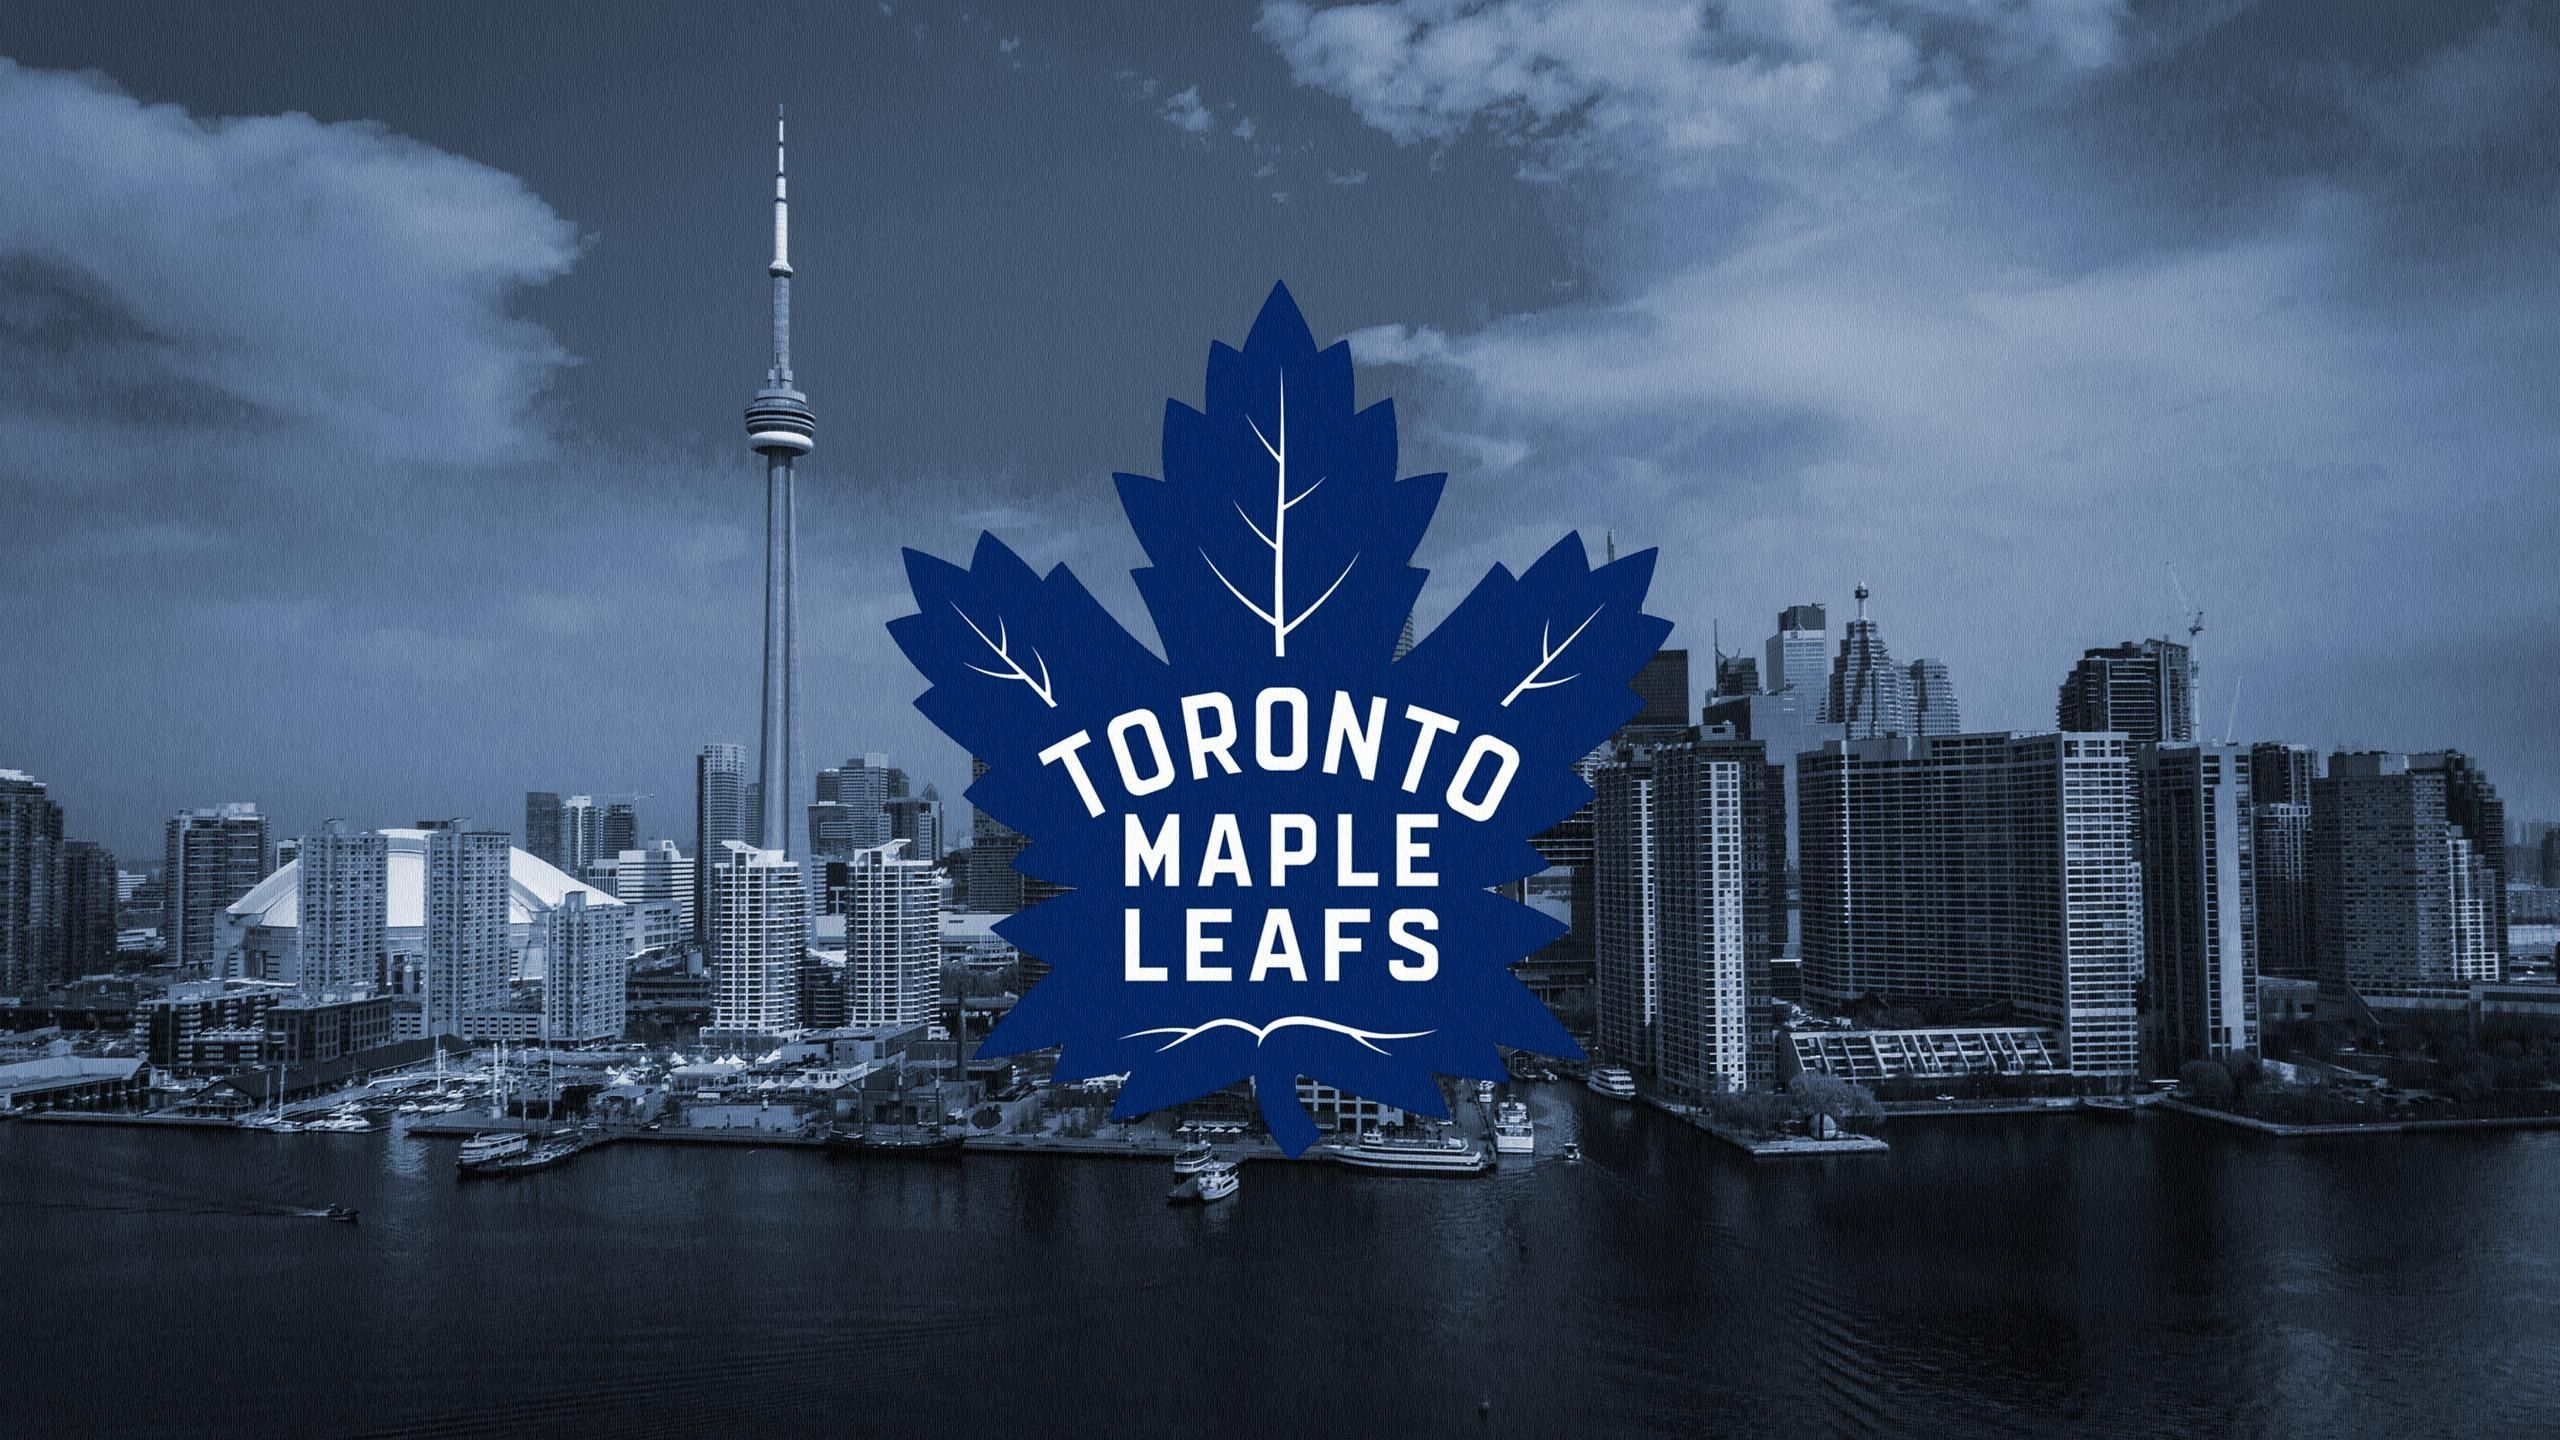 10 Most Popular Toronto Maple Leafs Background Full Hd 1080p For Pc Background Maple Leafs Wallpaper Toronto Maple Leafs Toronto Maple Leafs Wallpaper